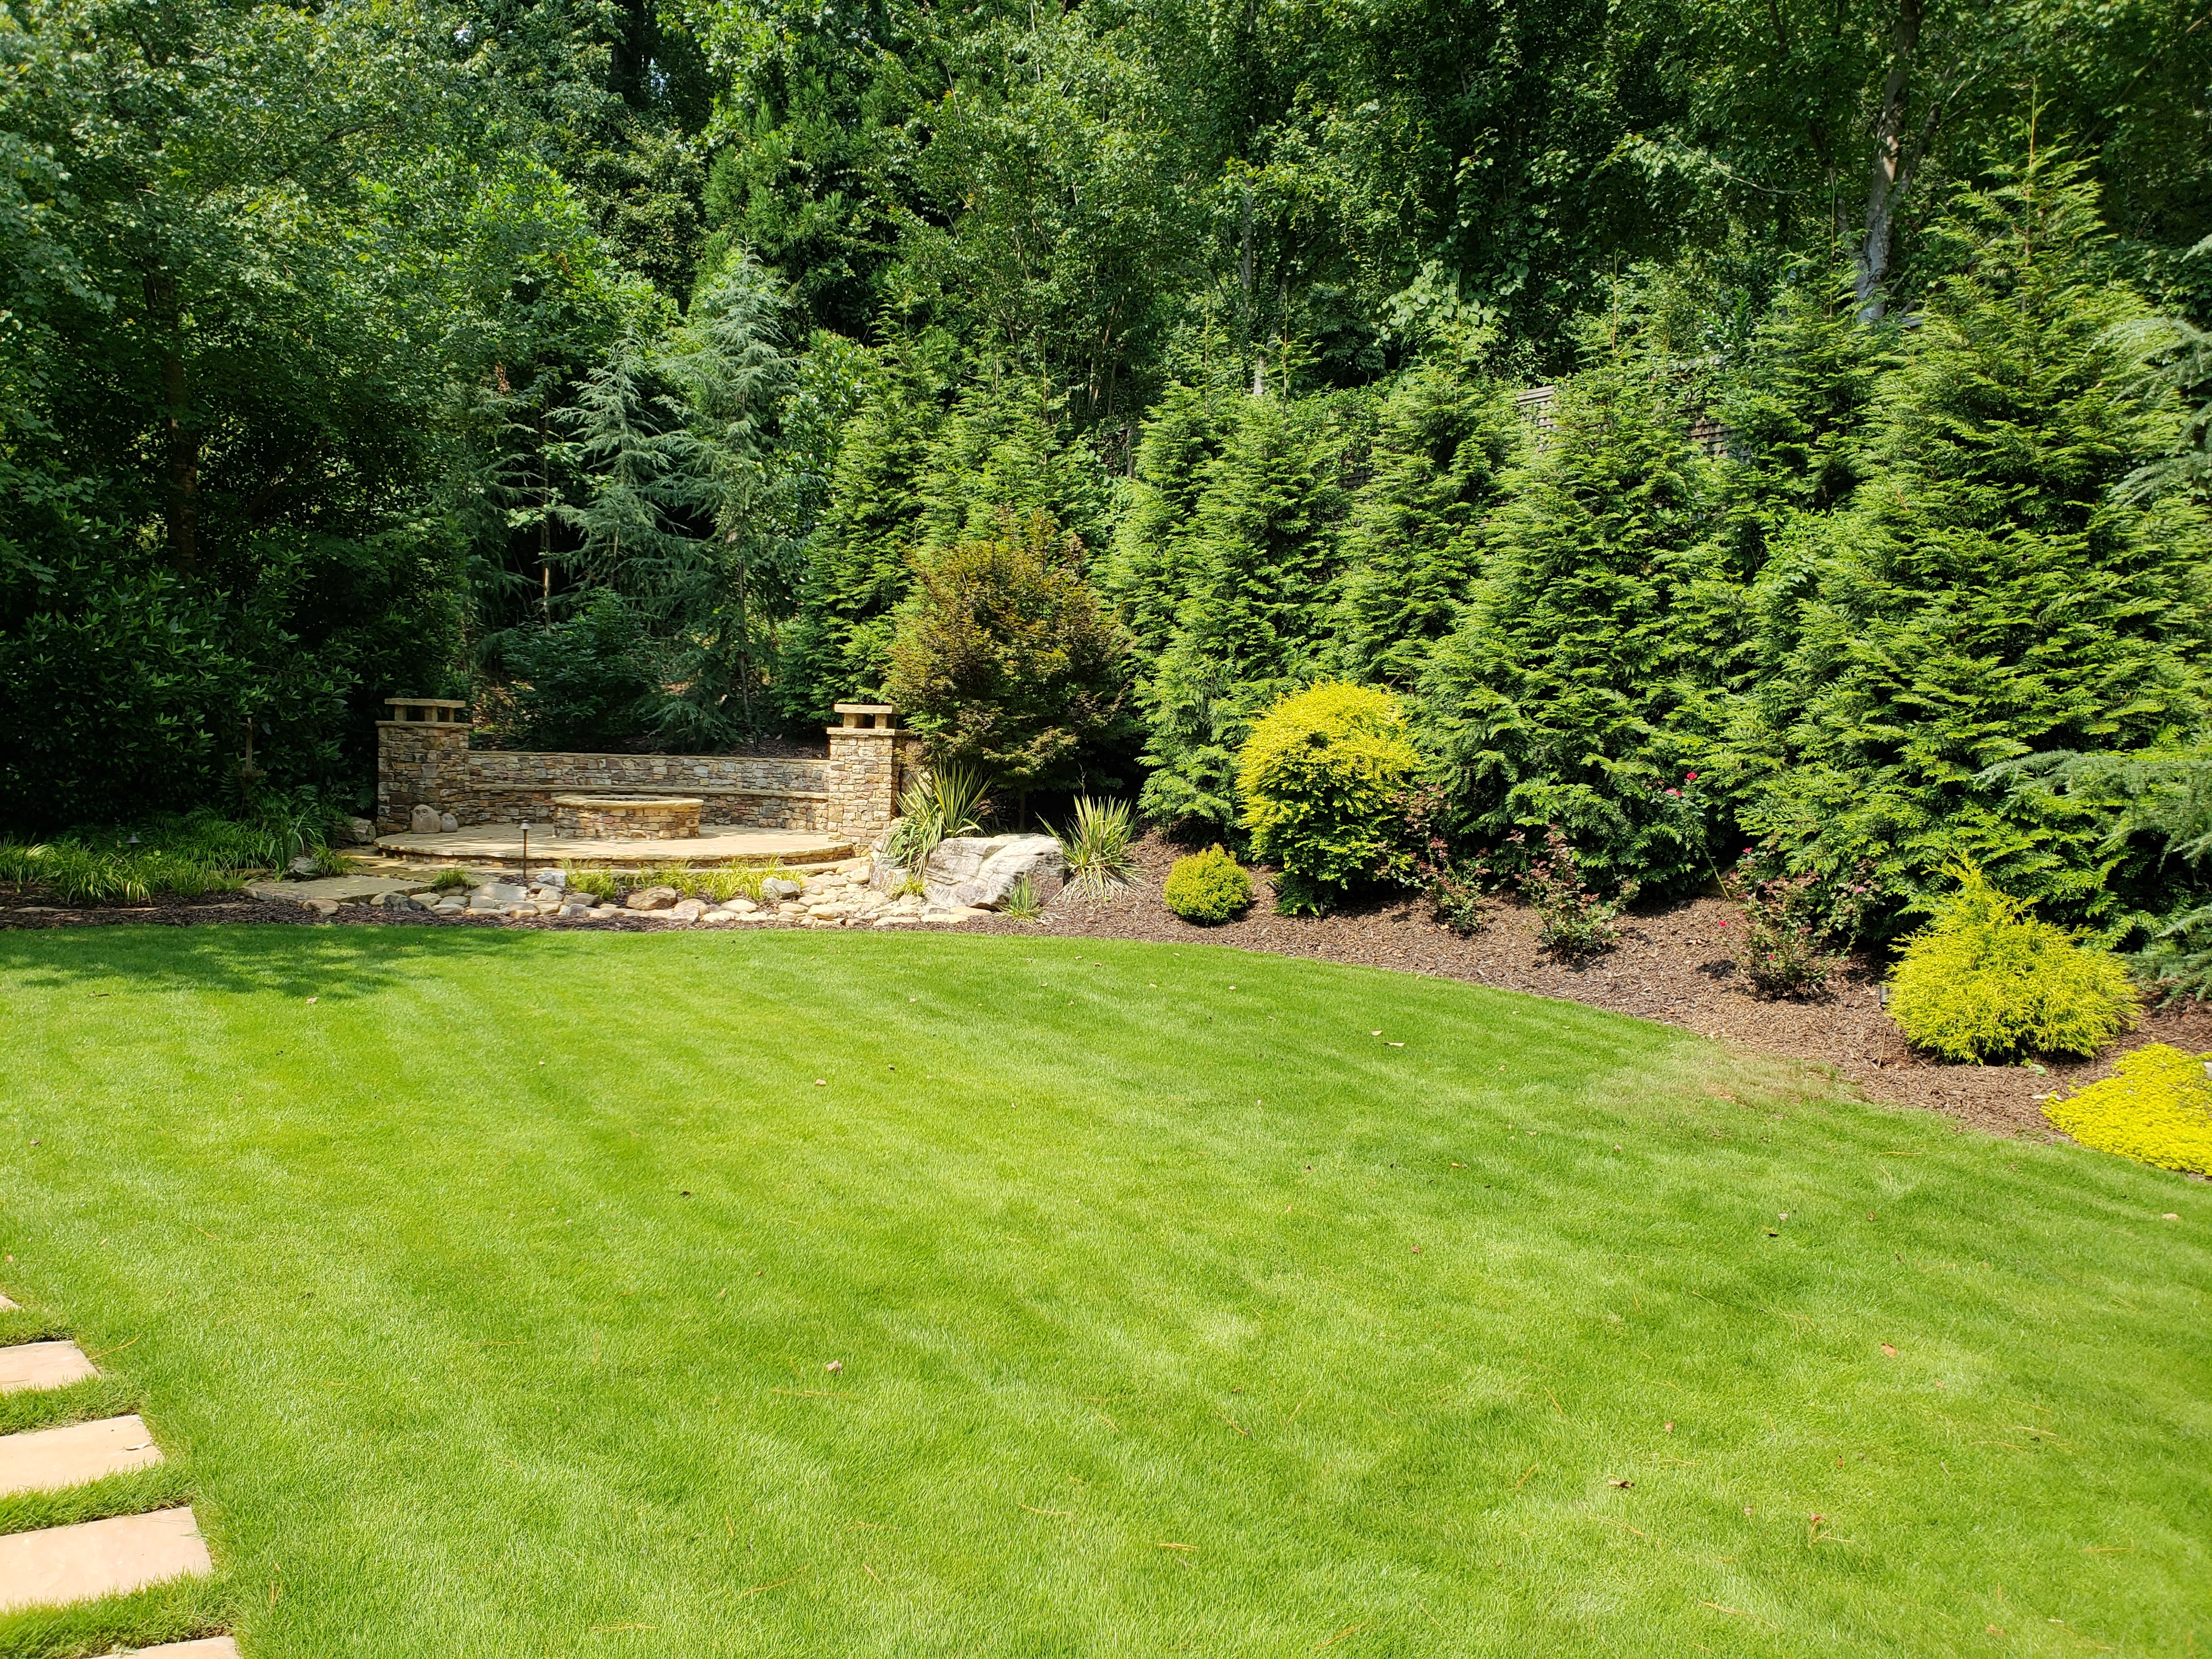 backyard landscaping with evergreen trees, stone patio, circular fire pit, and large grass yard